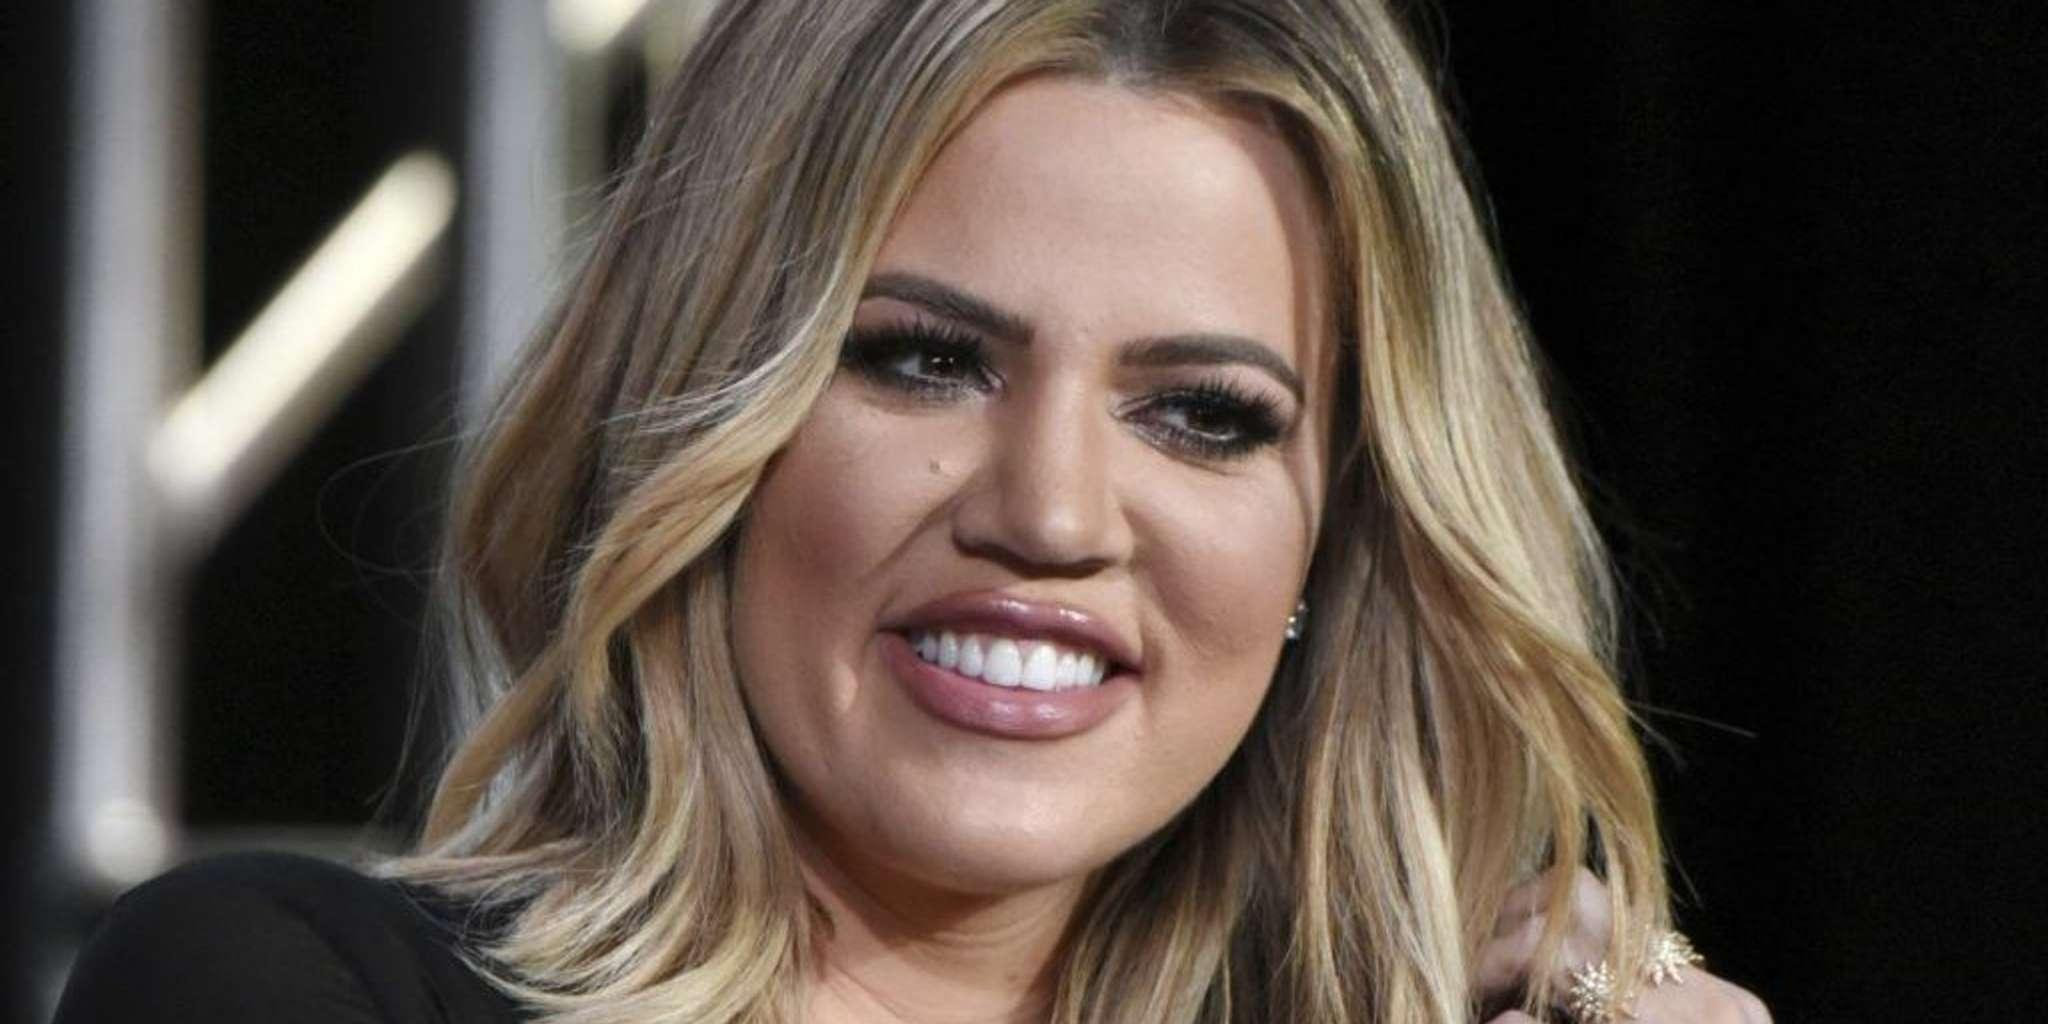 KUWK: Khloe Kardashian Shows Off Huge Pout And Fans Plead With Her To 'Stop The Injections'